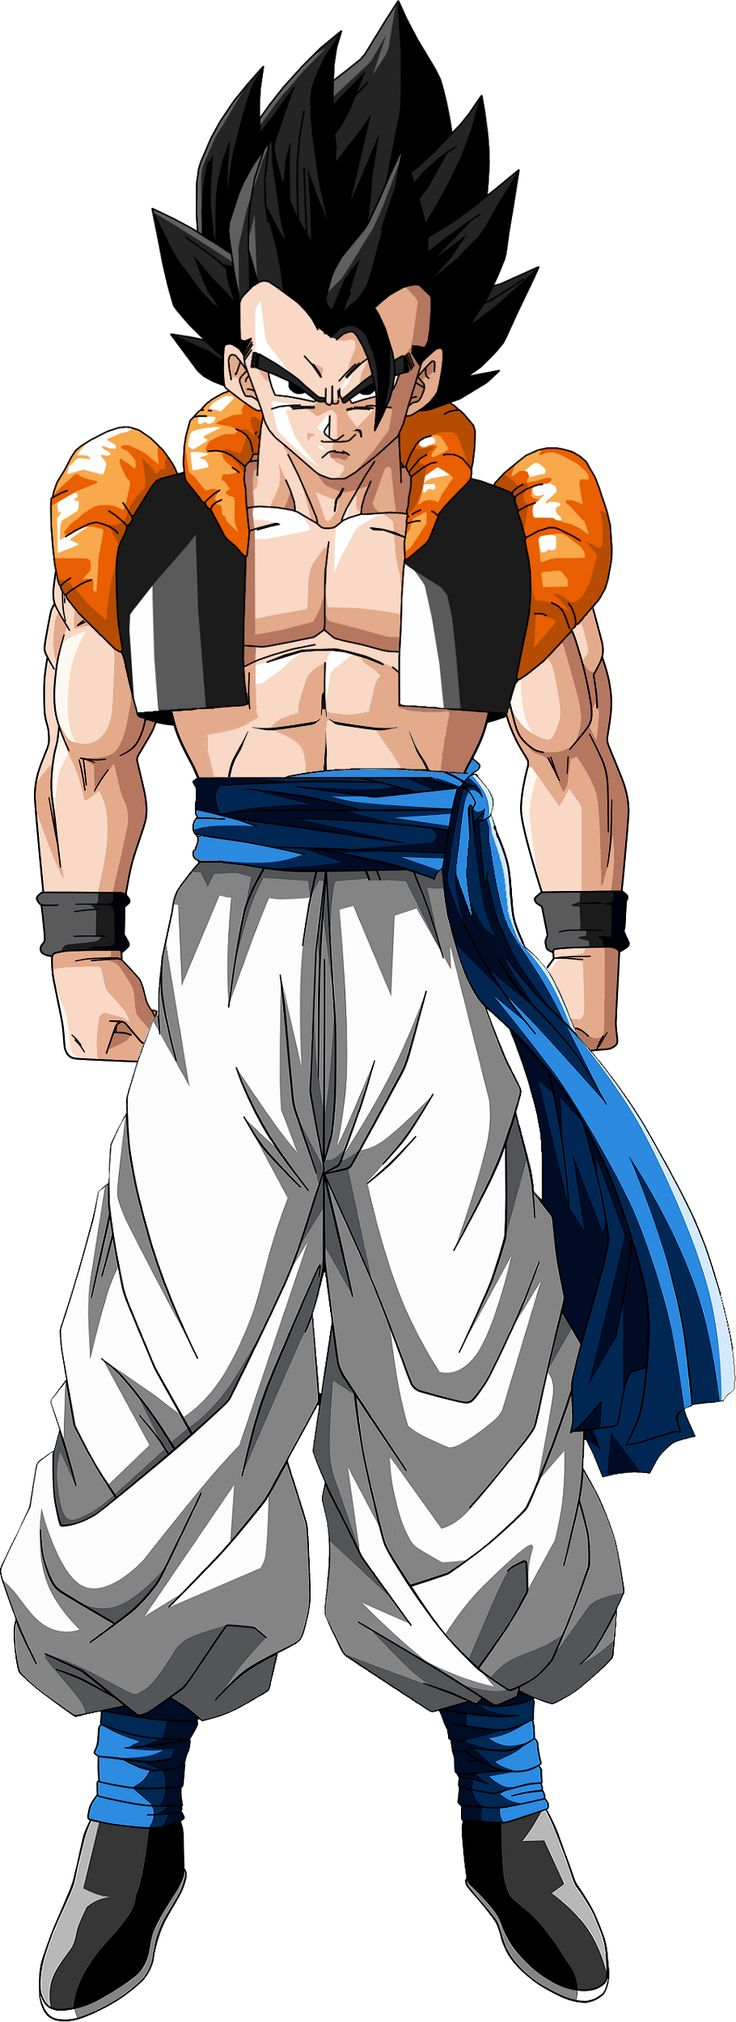 gogeta 1a fusion de goku y vegeta - bueno - Visit now for 3D Dragon Ball Z shirts now on sale!                                                                                                                                                                                 Más